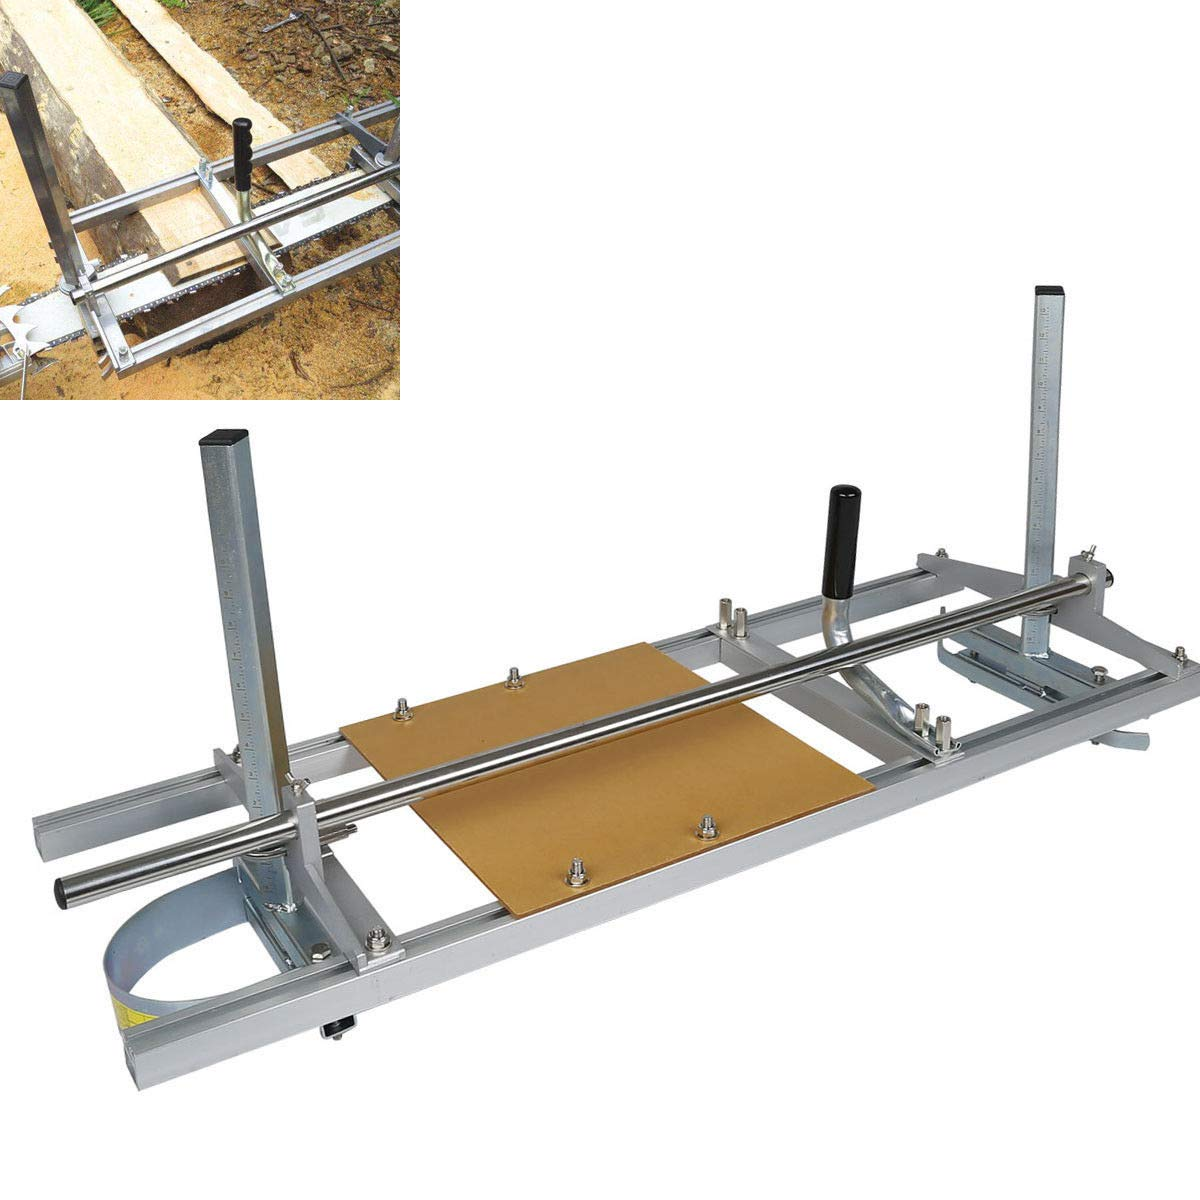 TC-Home 14'' - 36'' Chain Saw Mill Log Planking Lumber Cutting Portable Aluminium & Steel for Builders/Woodworkers by TC-Home (Image #1)